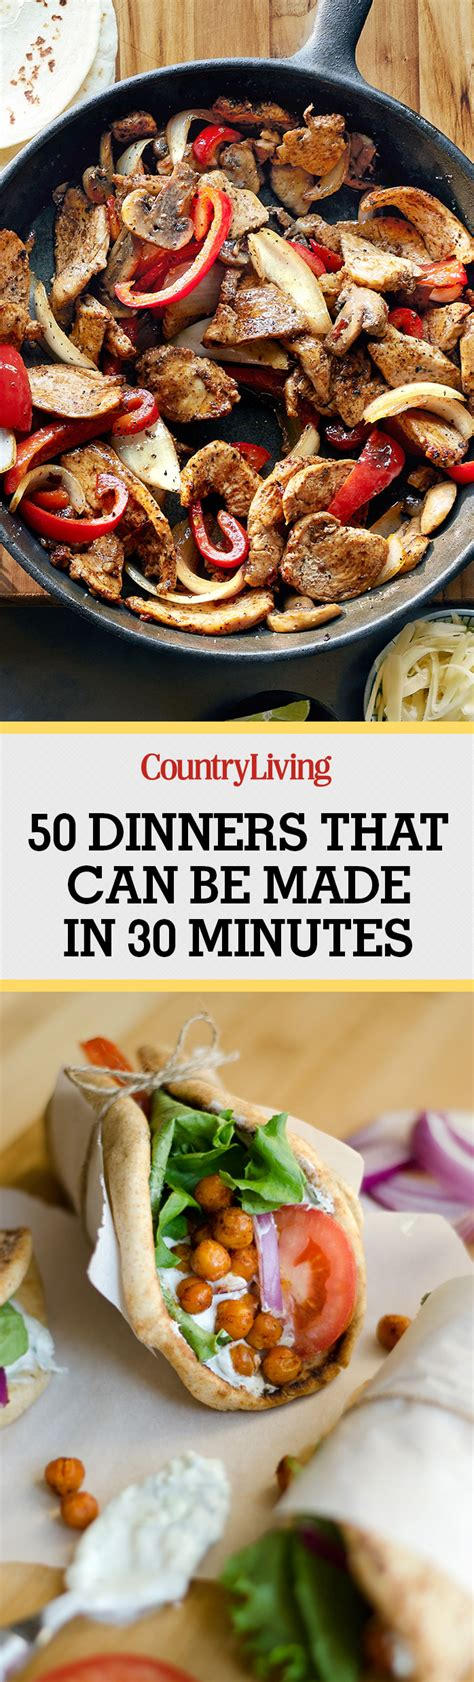 different dinners to make 90 quick and easy dinners best recipes for 30 minute meals